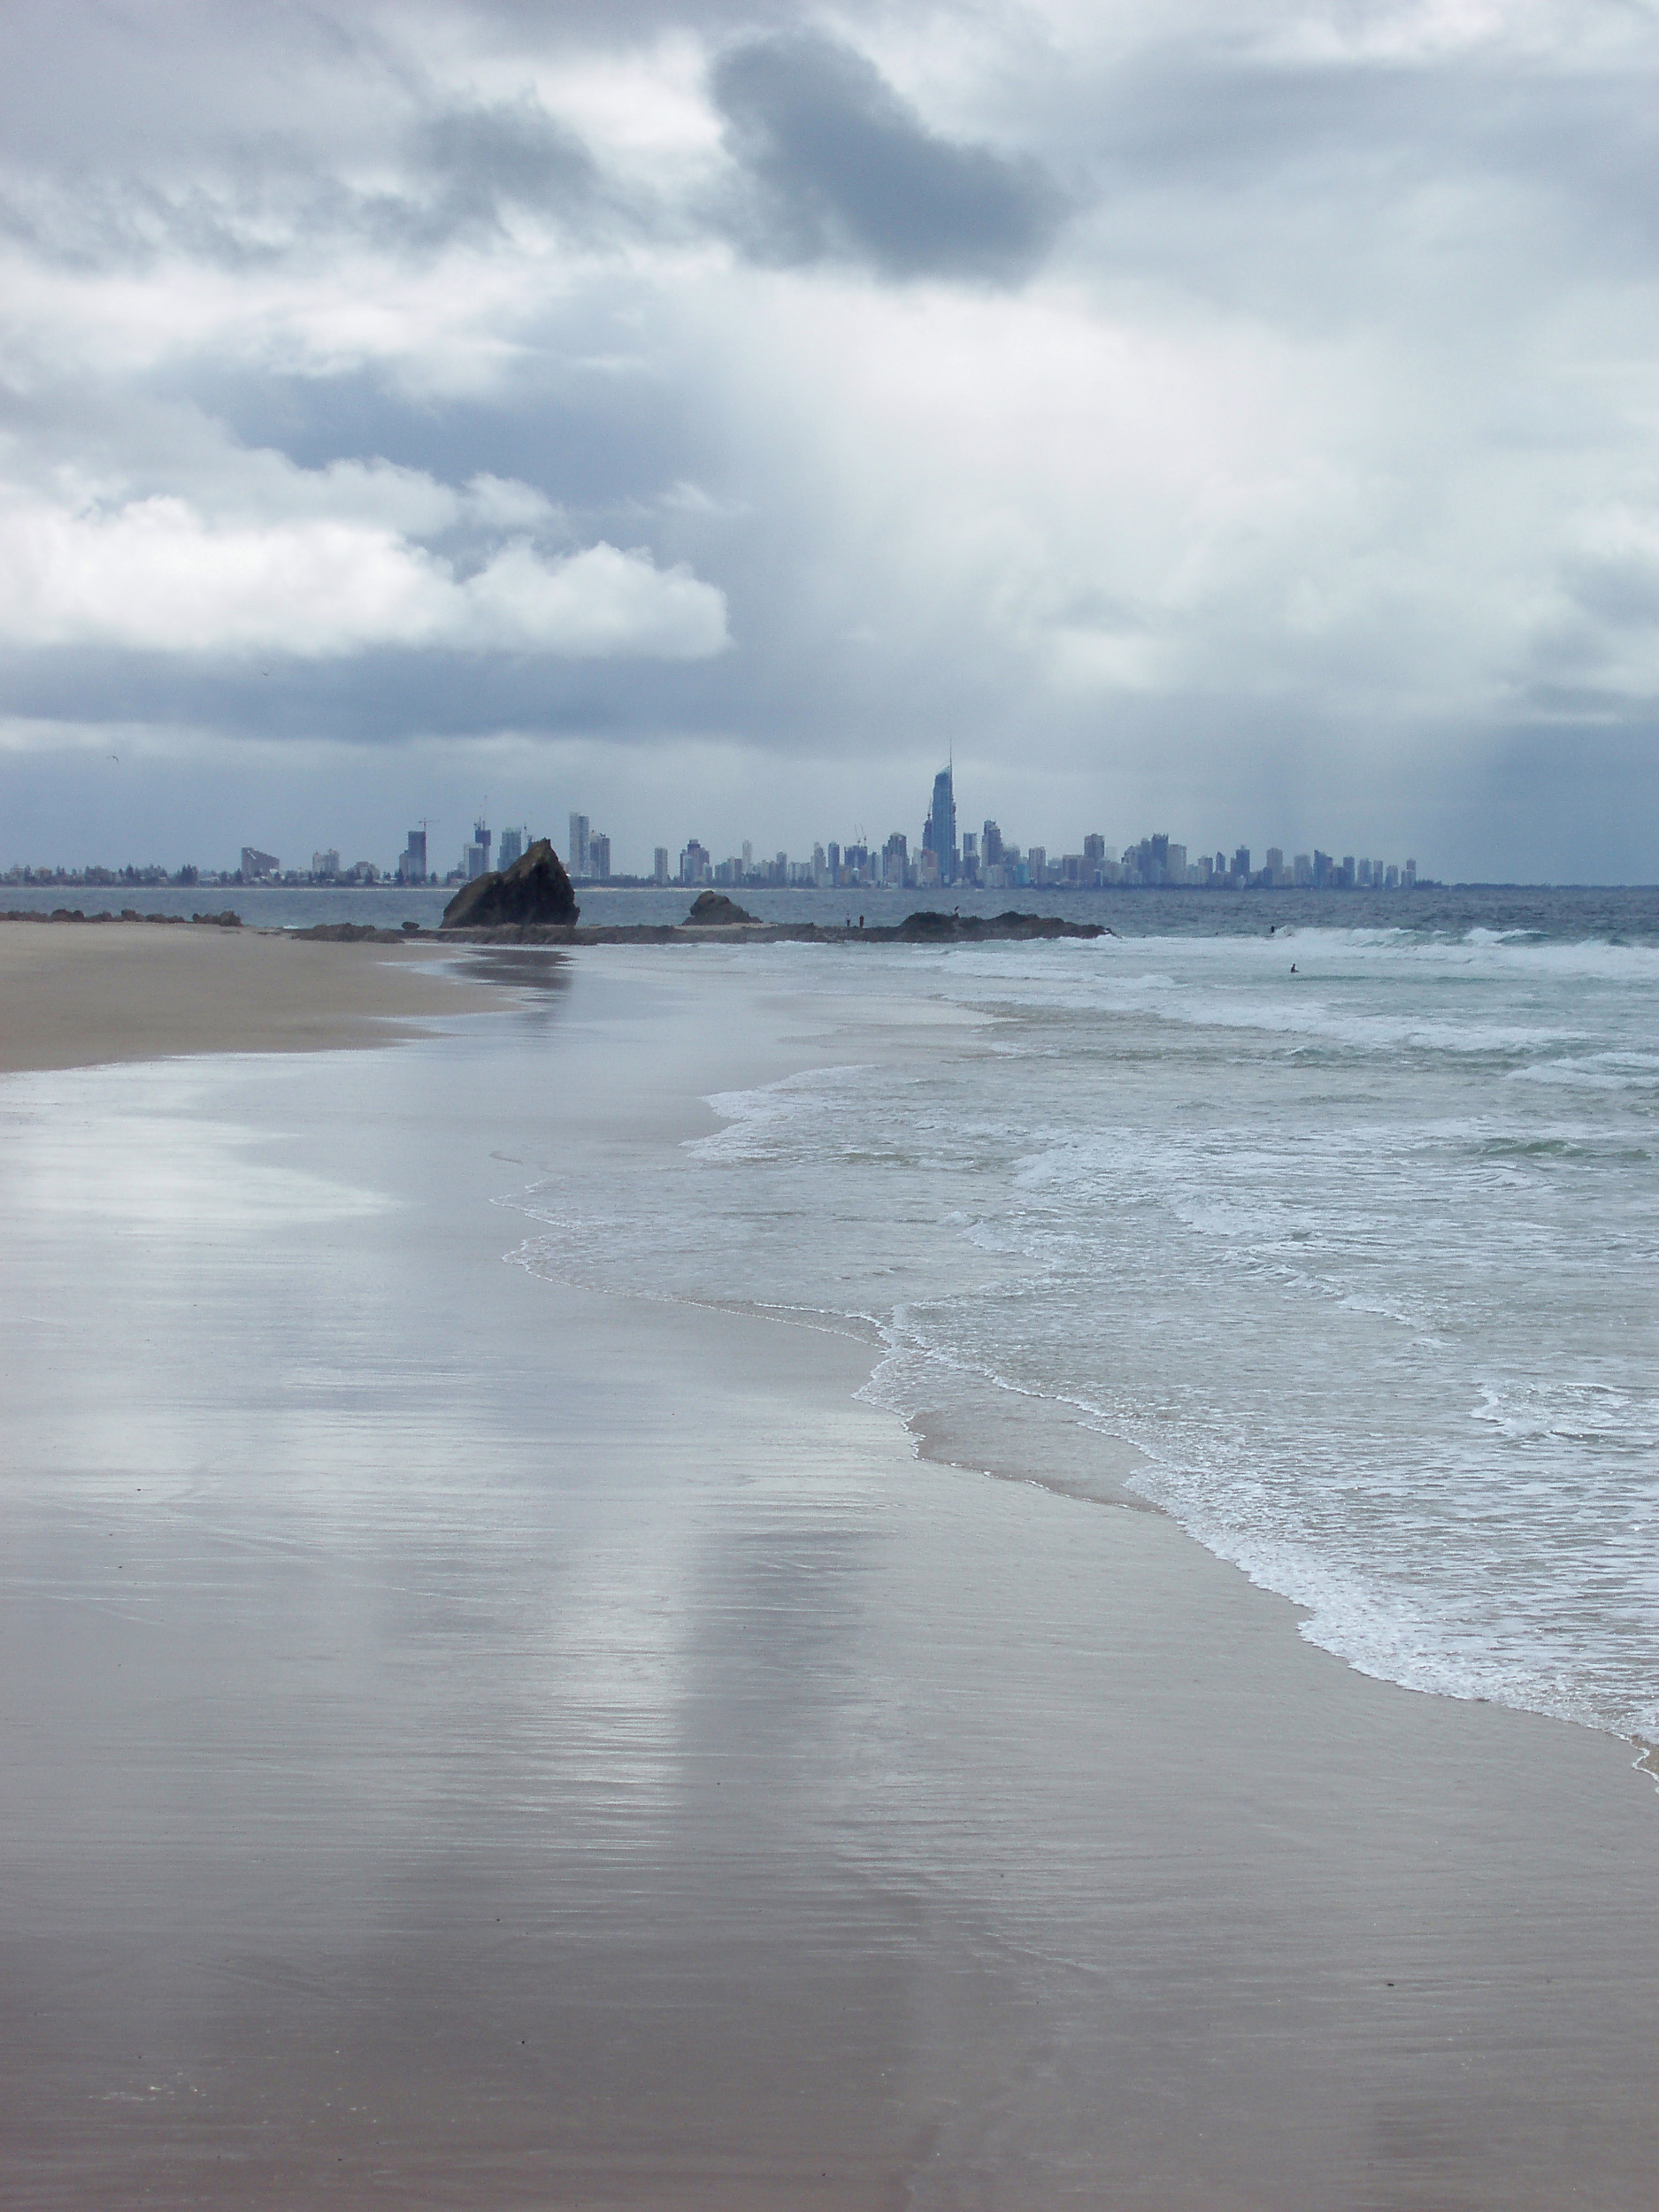 a wet day at currumbin beach, Q1 and the highrises of surfers paradise can be seen in the background